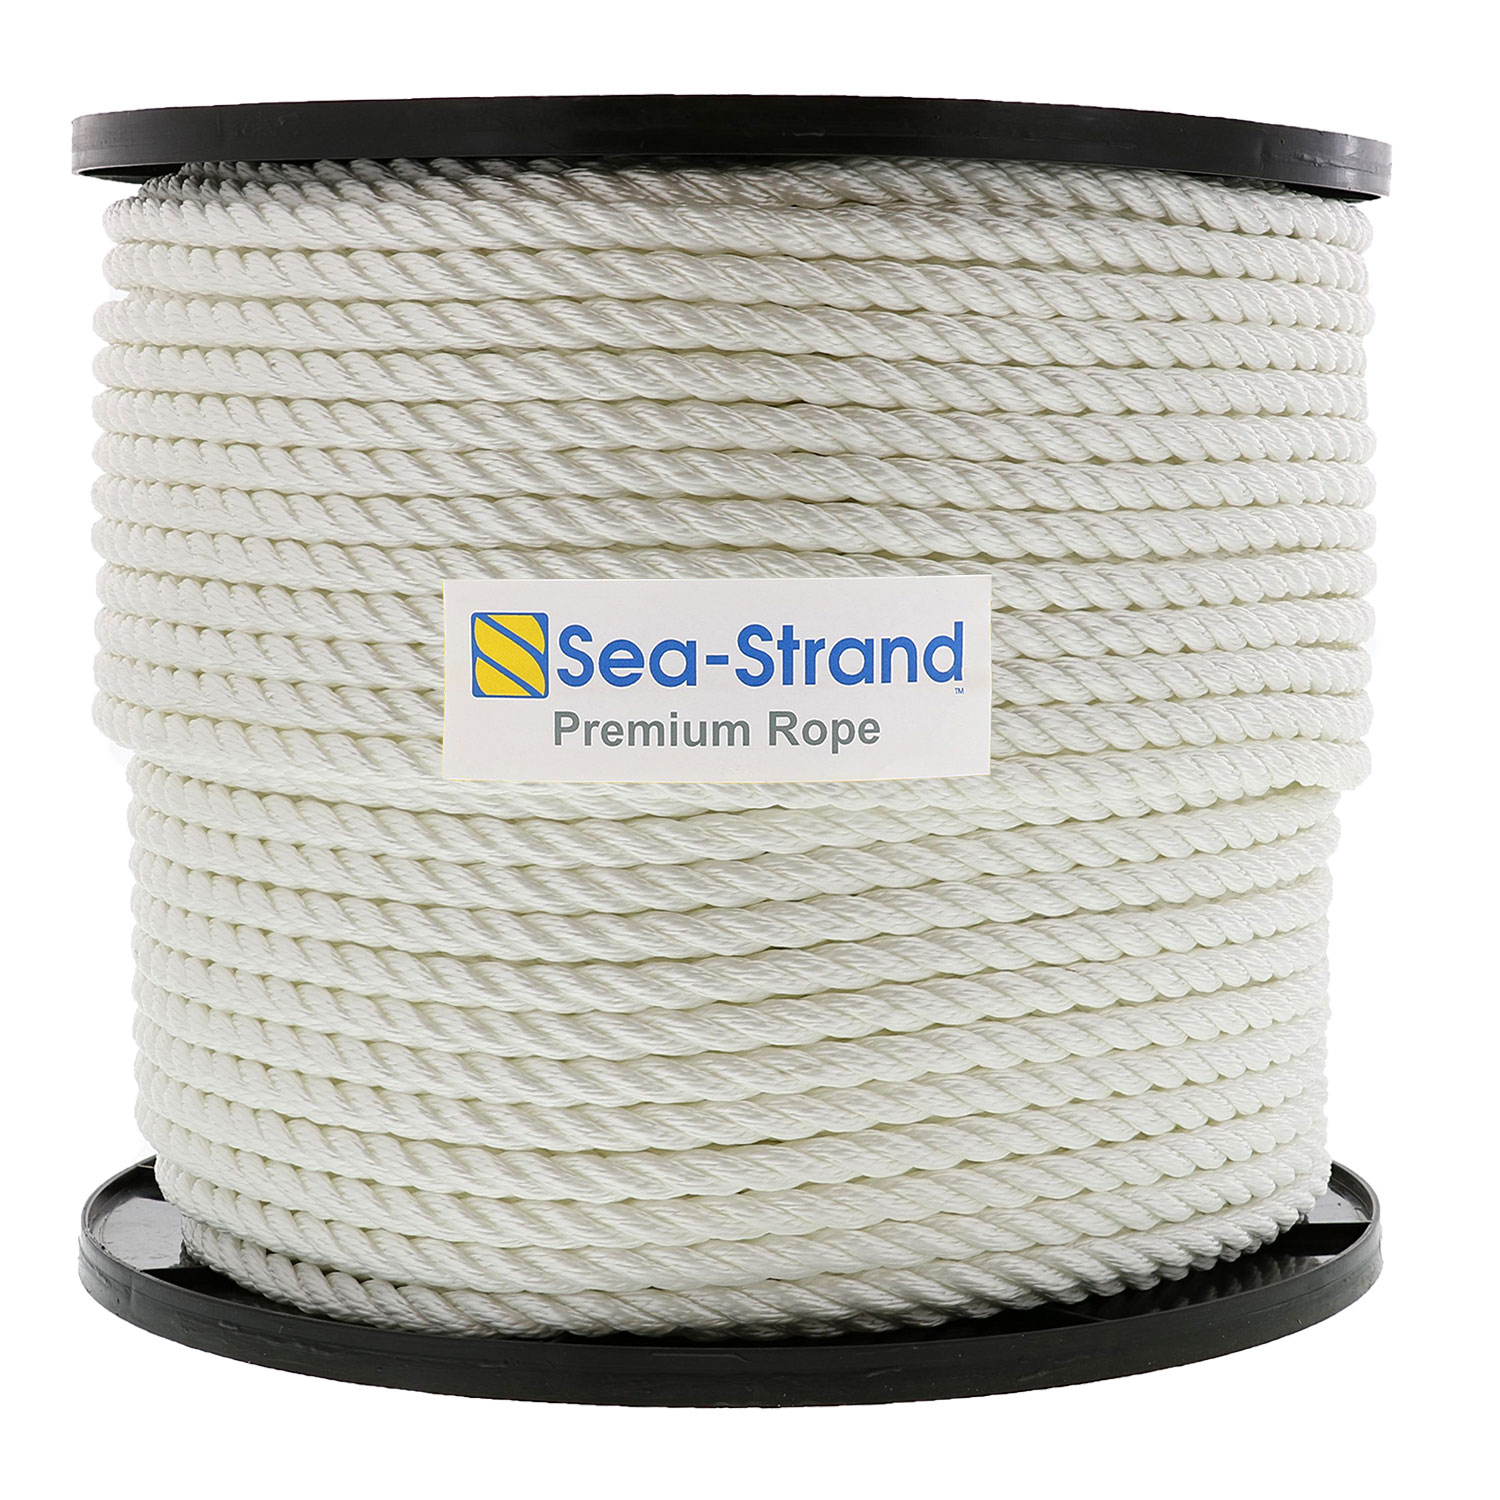 "5/8"" x 600' Reel, 3-Strand Nylon Rope"